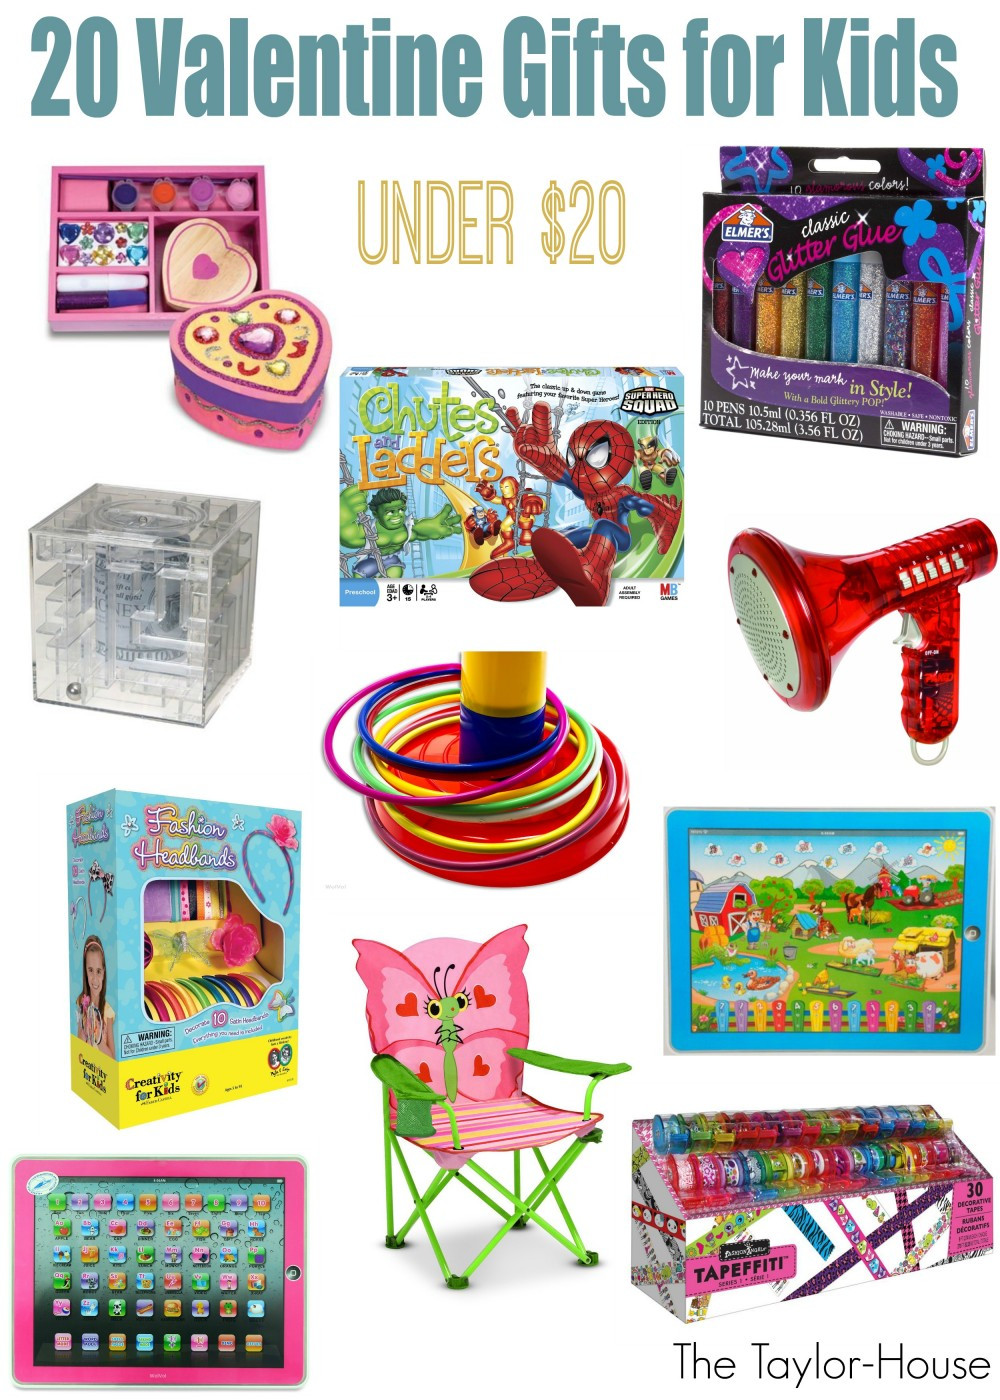 Gifts For Gifted Children  Valentine Gift Ideas for Kids